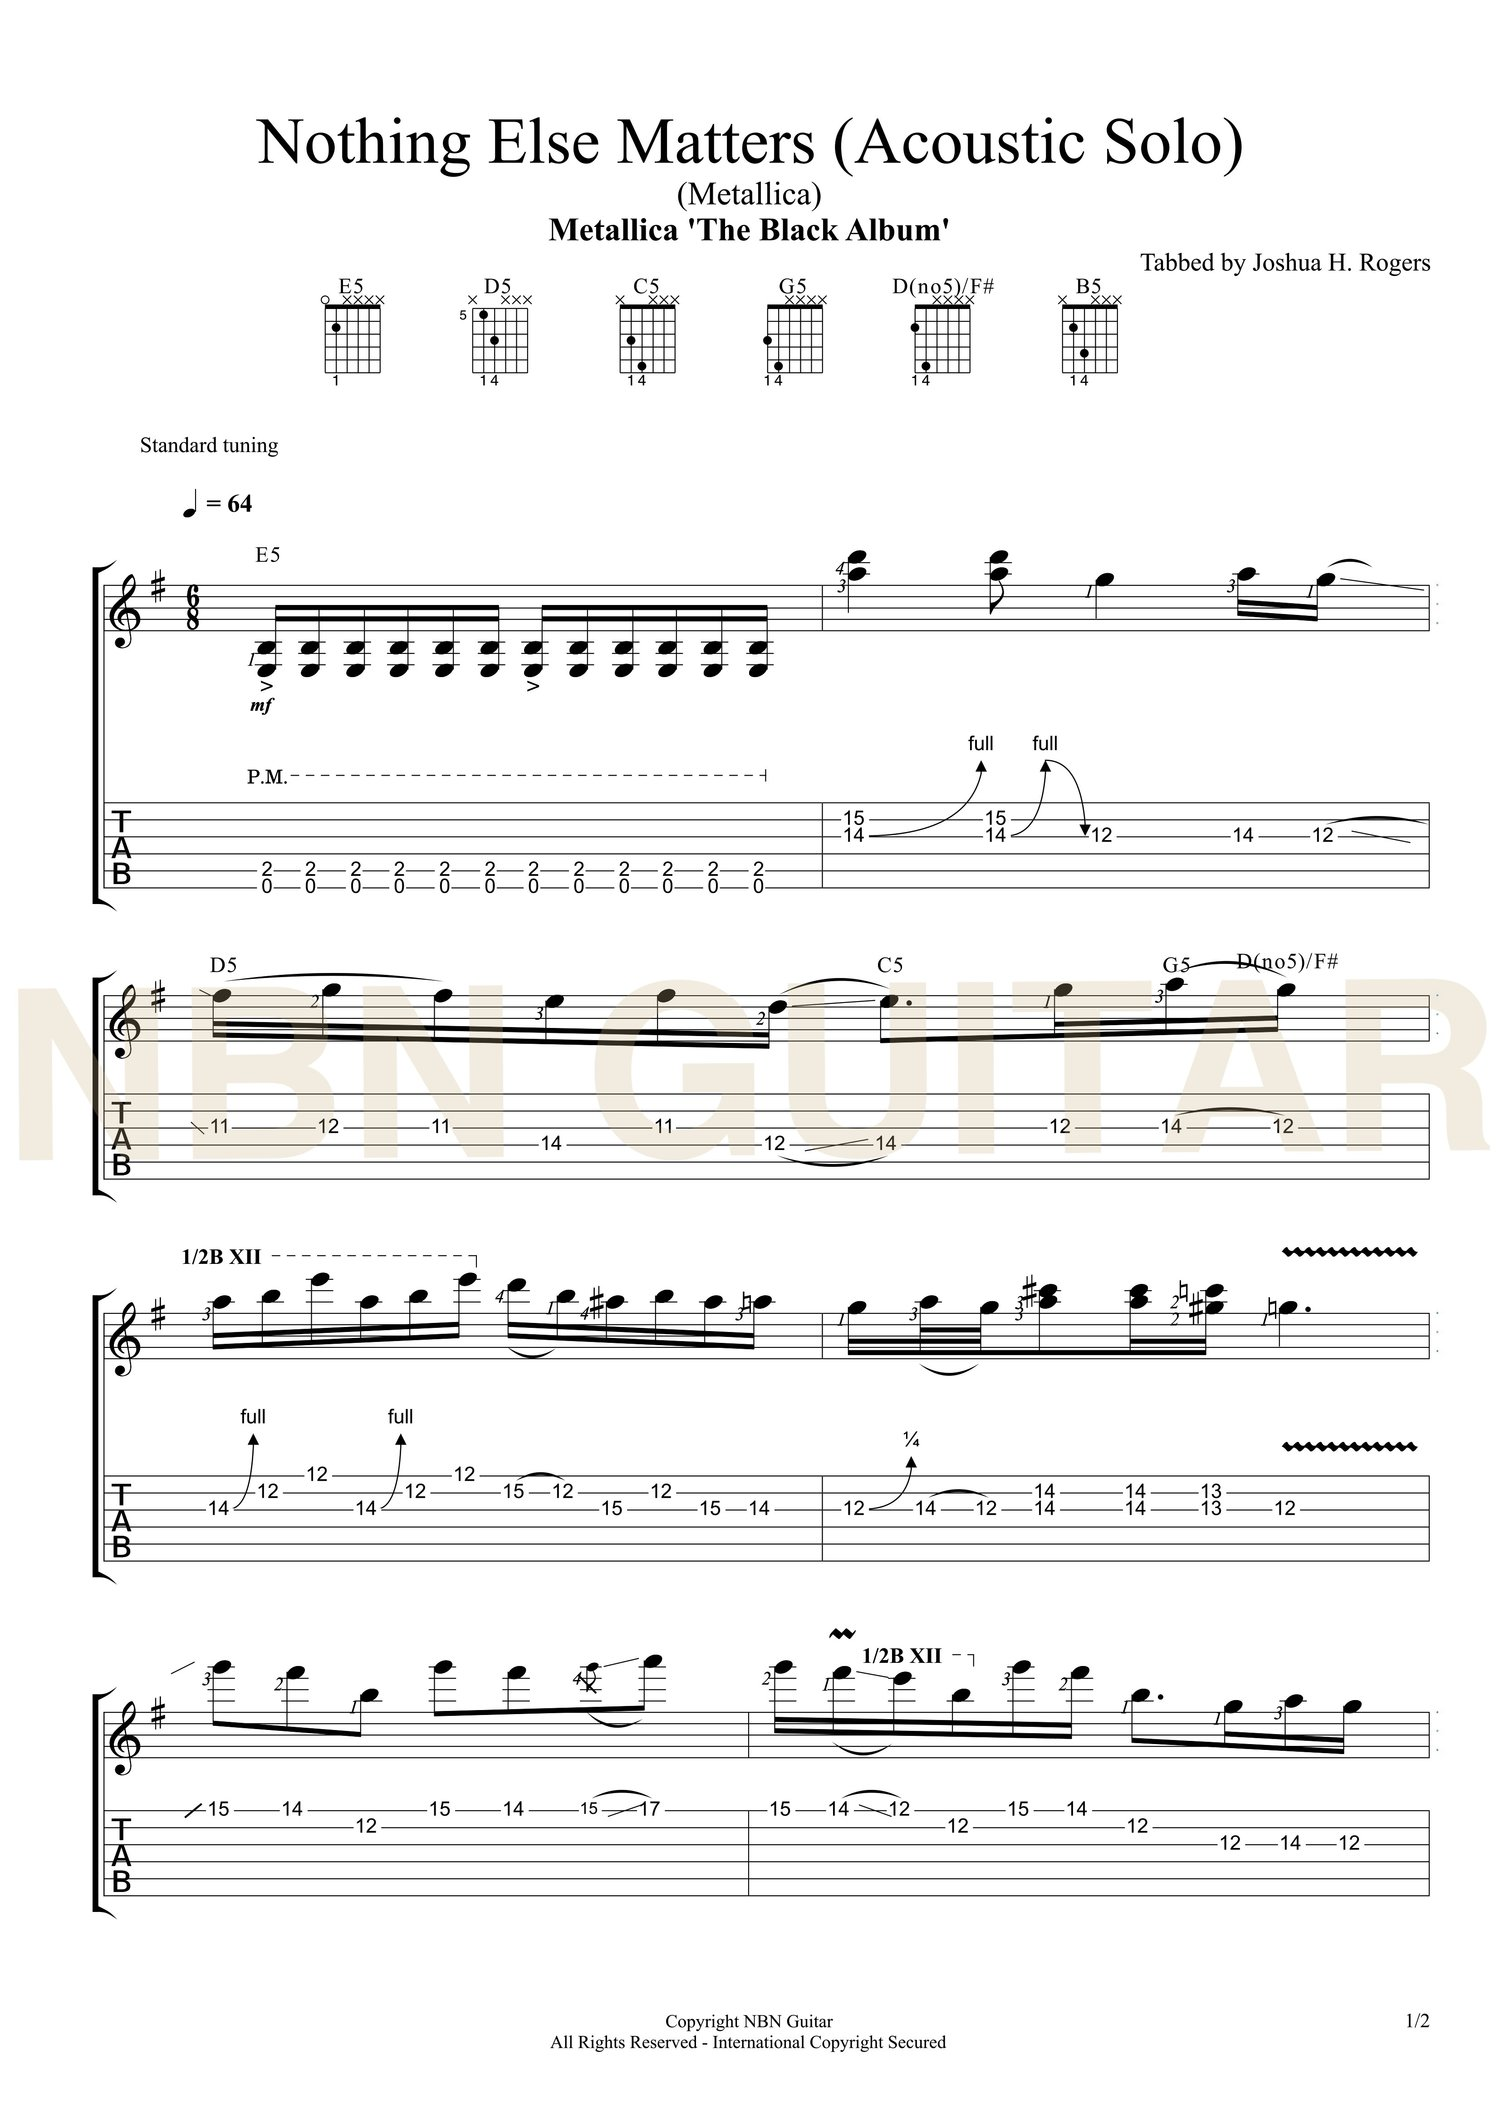 Nothing Else Matters Acoustic Solo Sheet Music Tabs Nbn Guitar